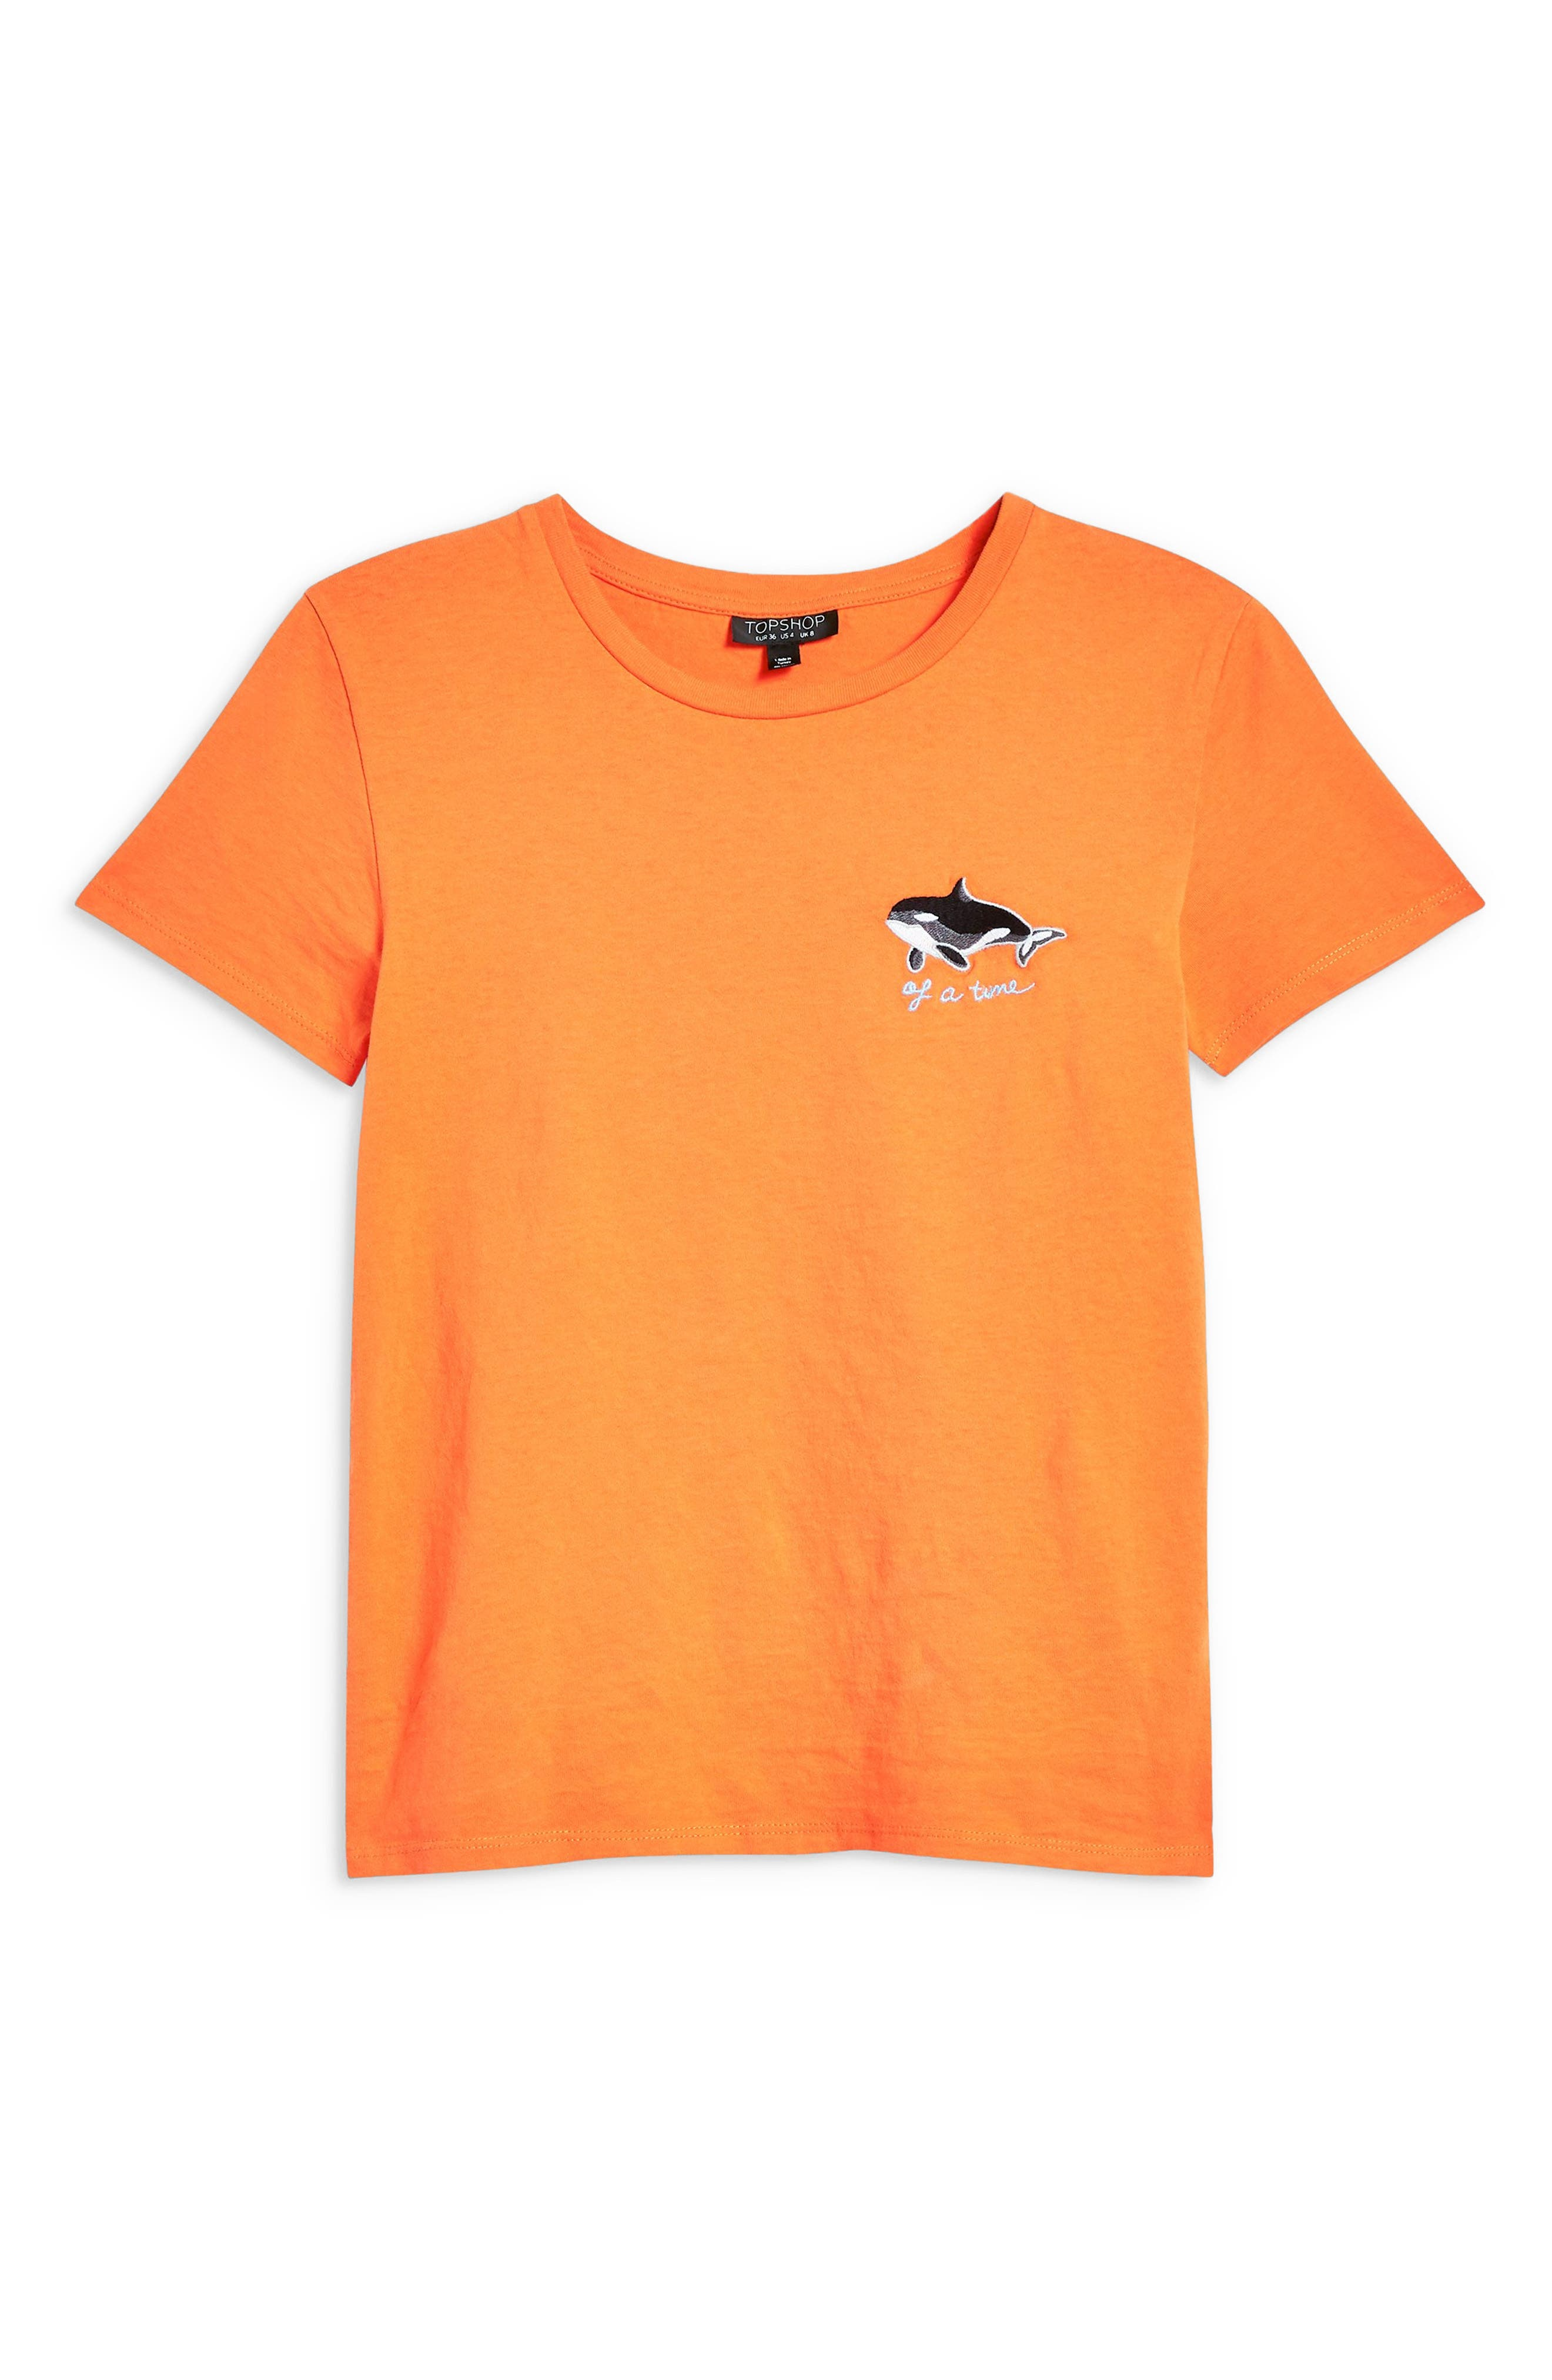 Whale of a Time Tee,                             Alternate thumbnail 5, color,                             800